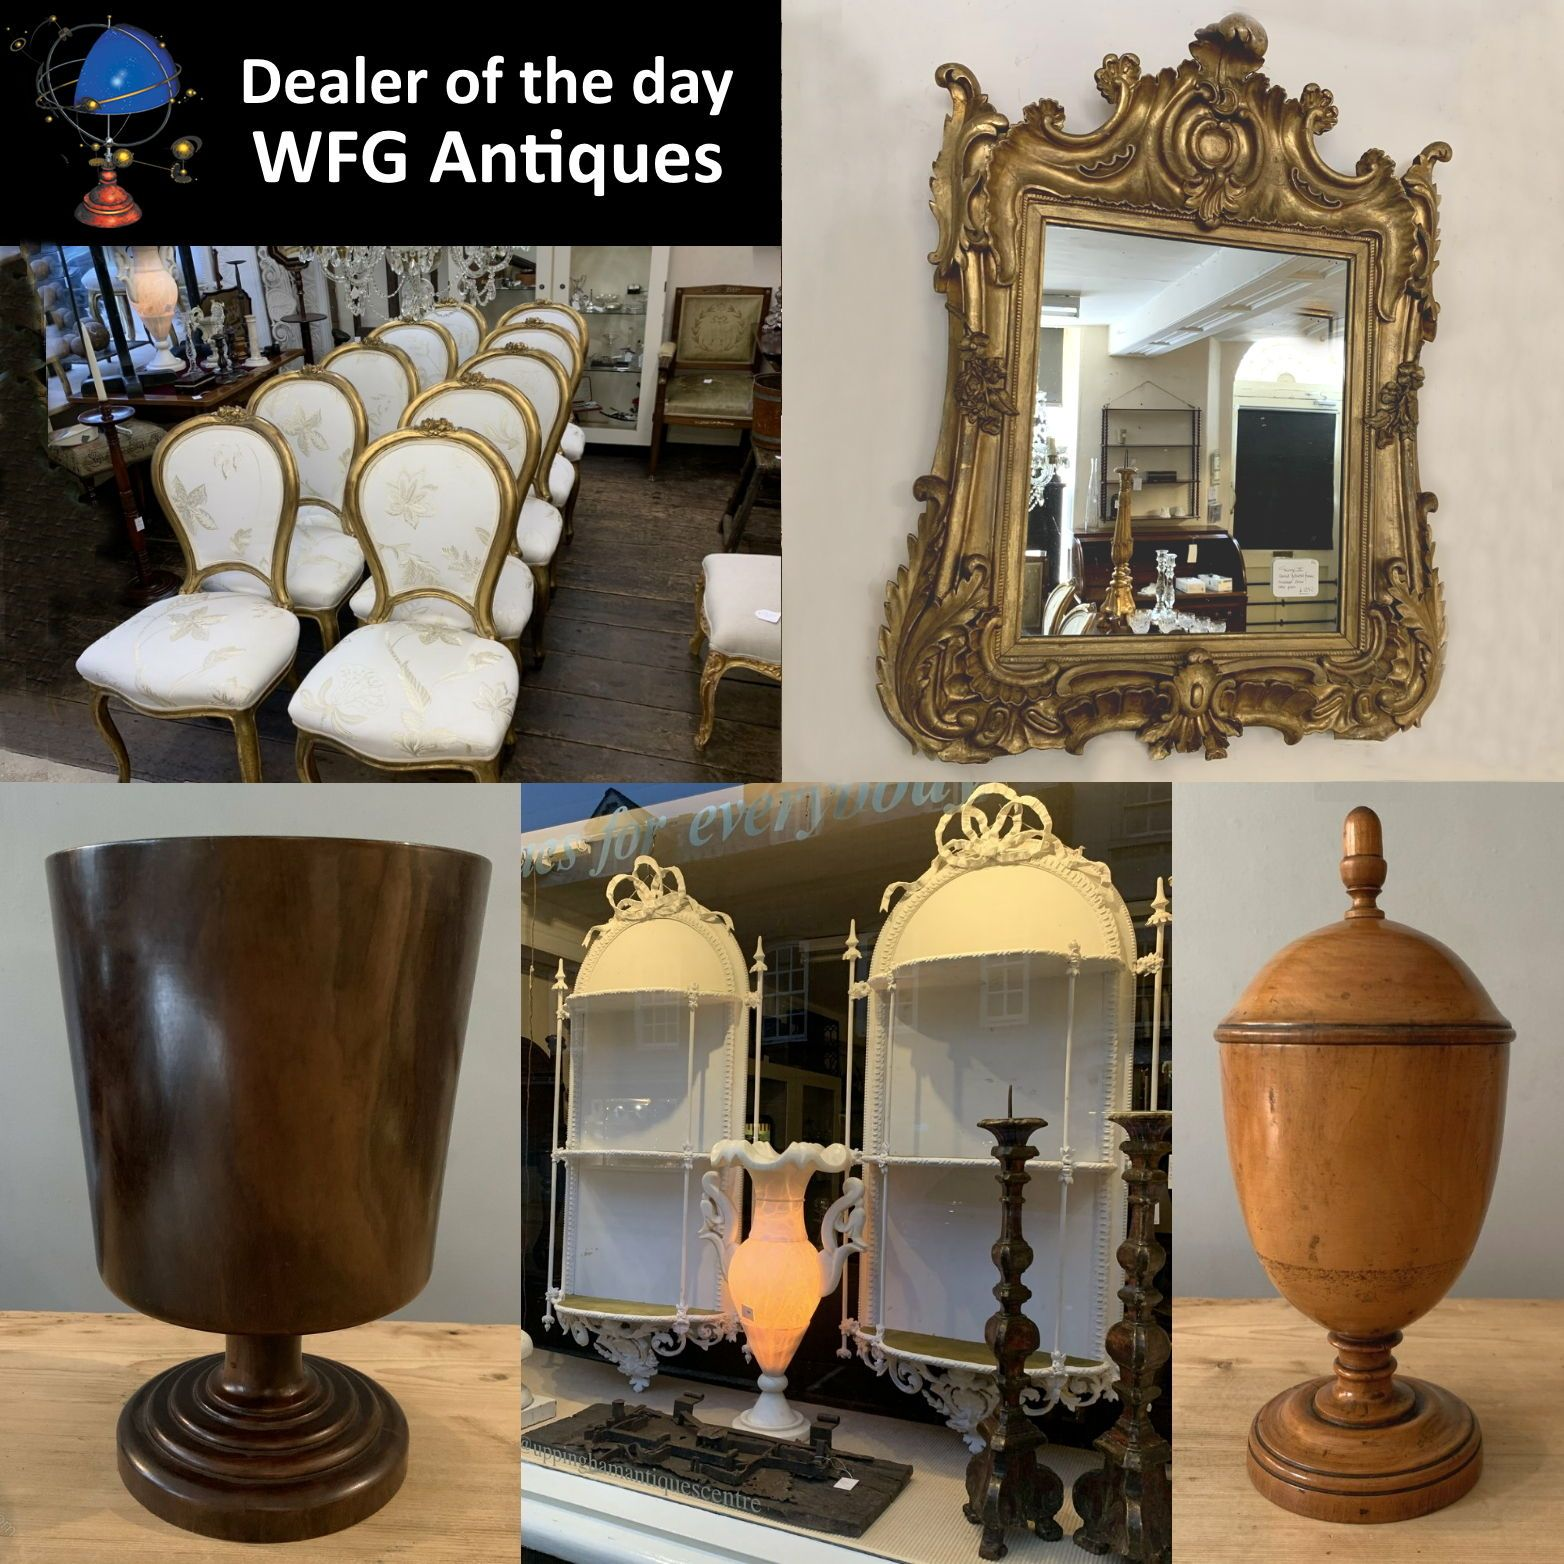 Pin On Antique Dealer Of The Day